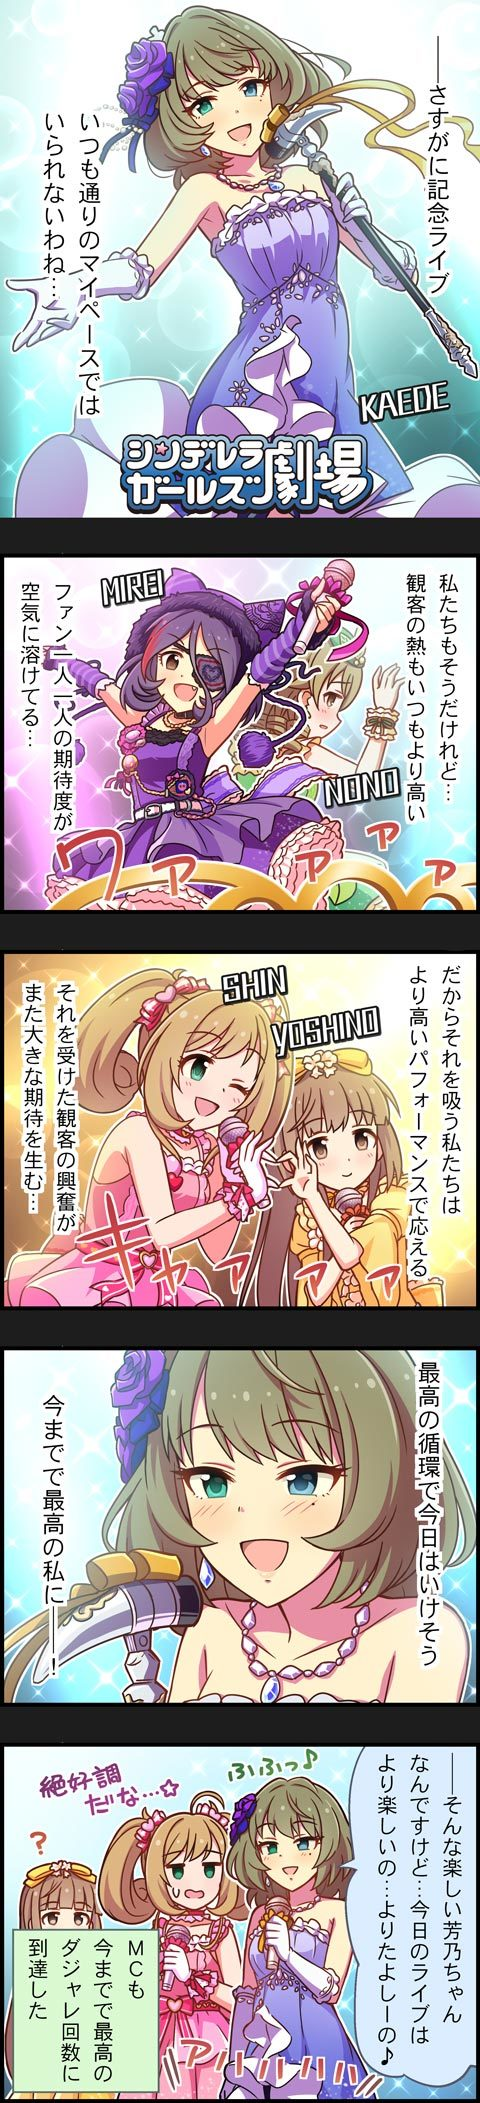 5girls 5koma ahoge animal_hood blonde_hair blue_eyes brown_eyes brown_hair cat_hood character_name comic dress drill_hair eyepatch green_eyes hayasaka_mirei heterochromia highres hood idolmaster idolmaster_cinderella_girls light_brown_hair long_hair long_image mole mole_under_eye morikubo_nono multicolored_hair multiple_girls official_art purple_hair satou_shin short_hair takagaki_kaede tall_image twintails very_long_hair yorita_yoshino